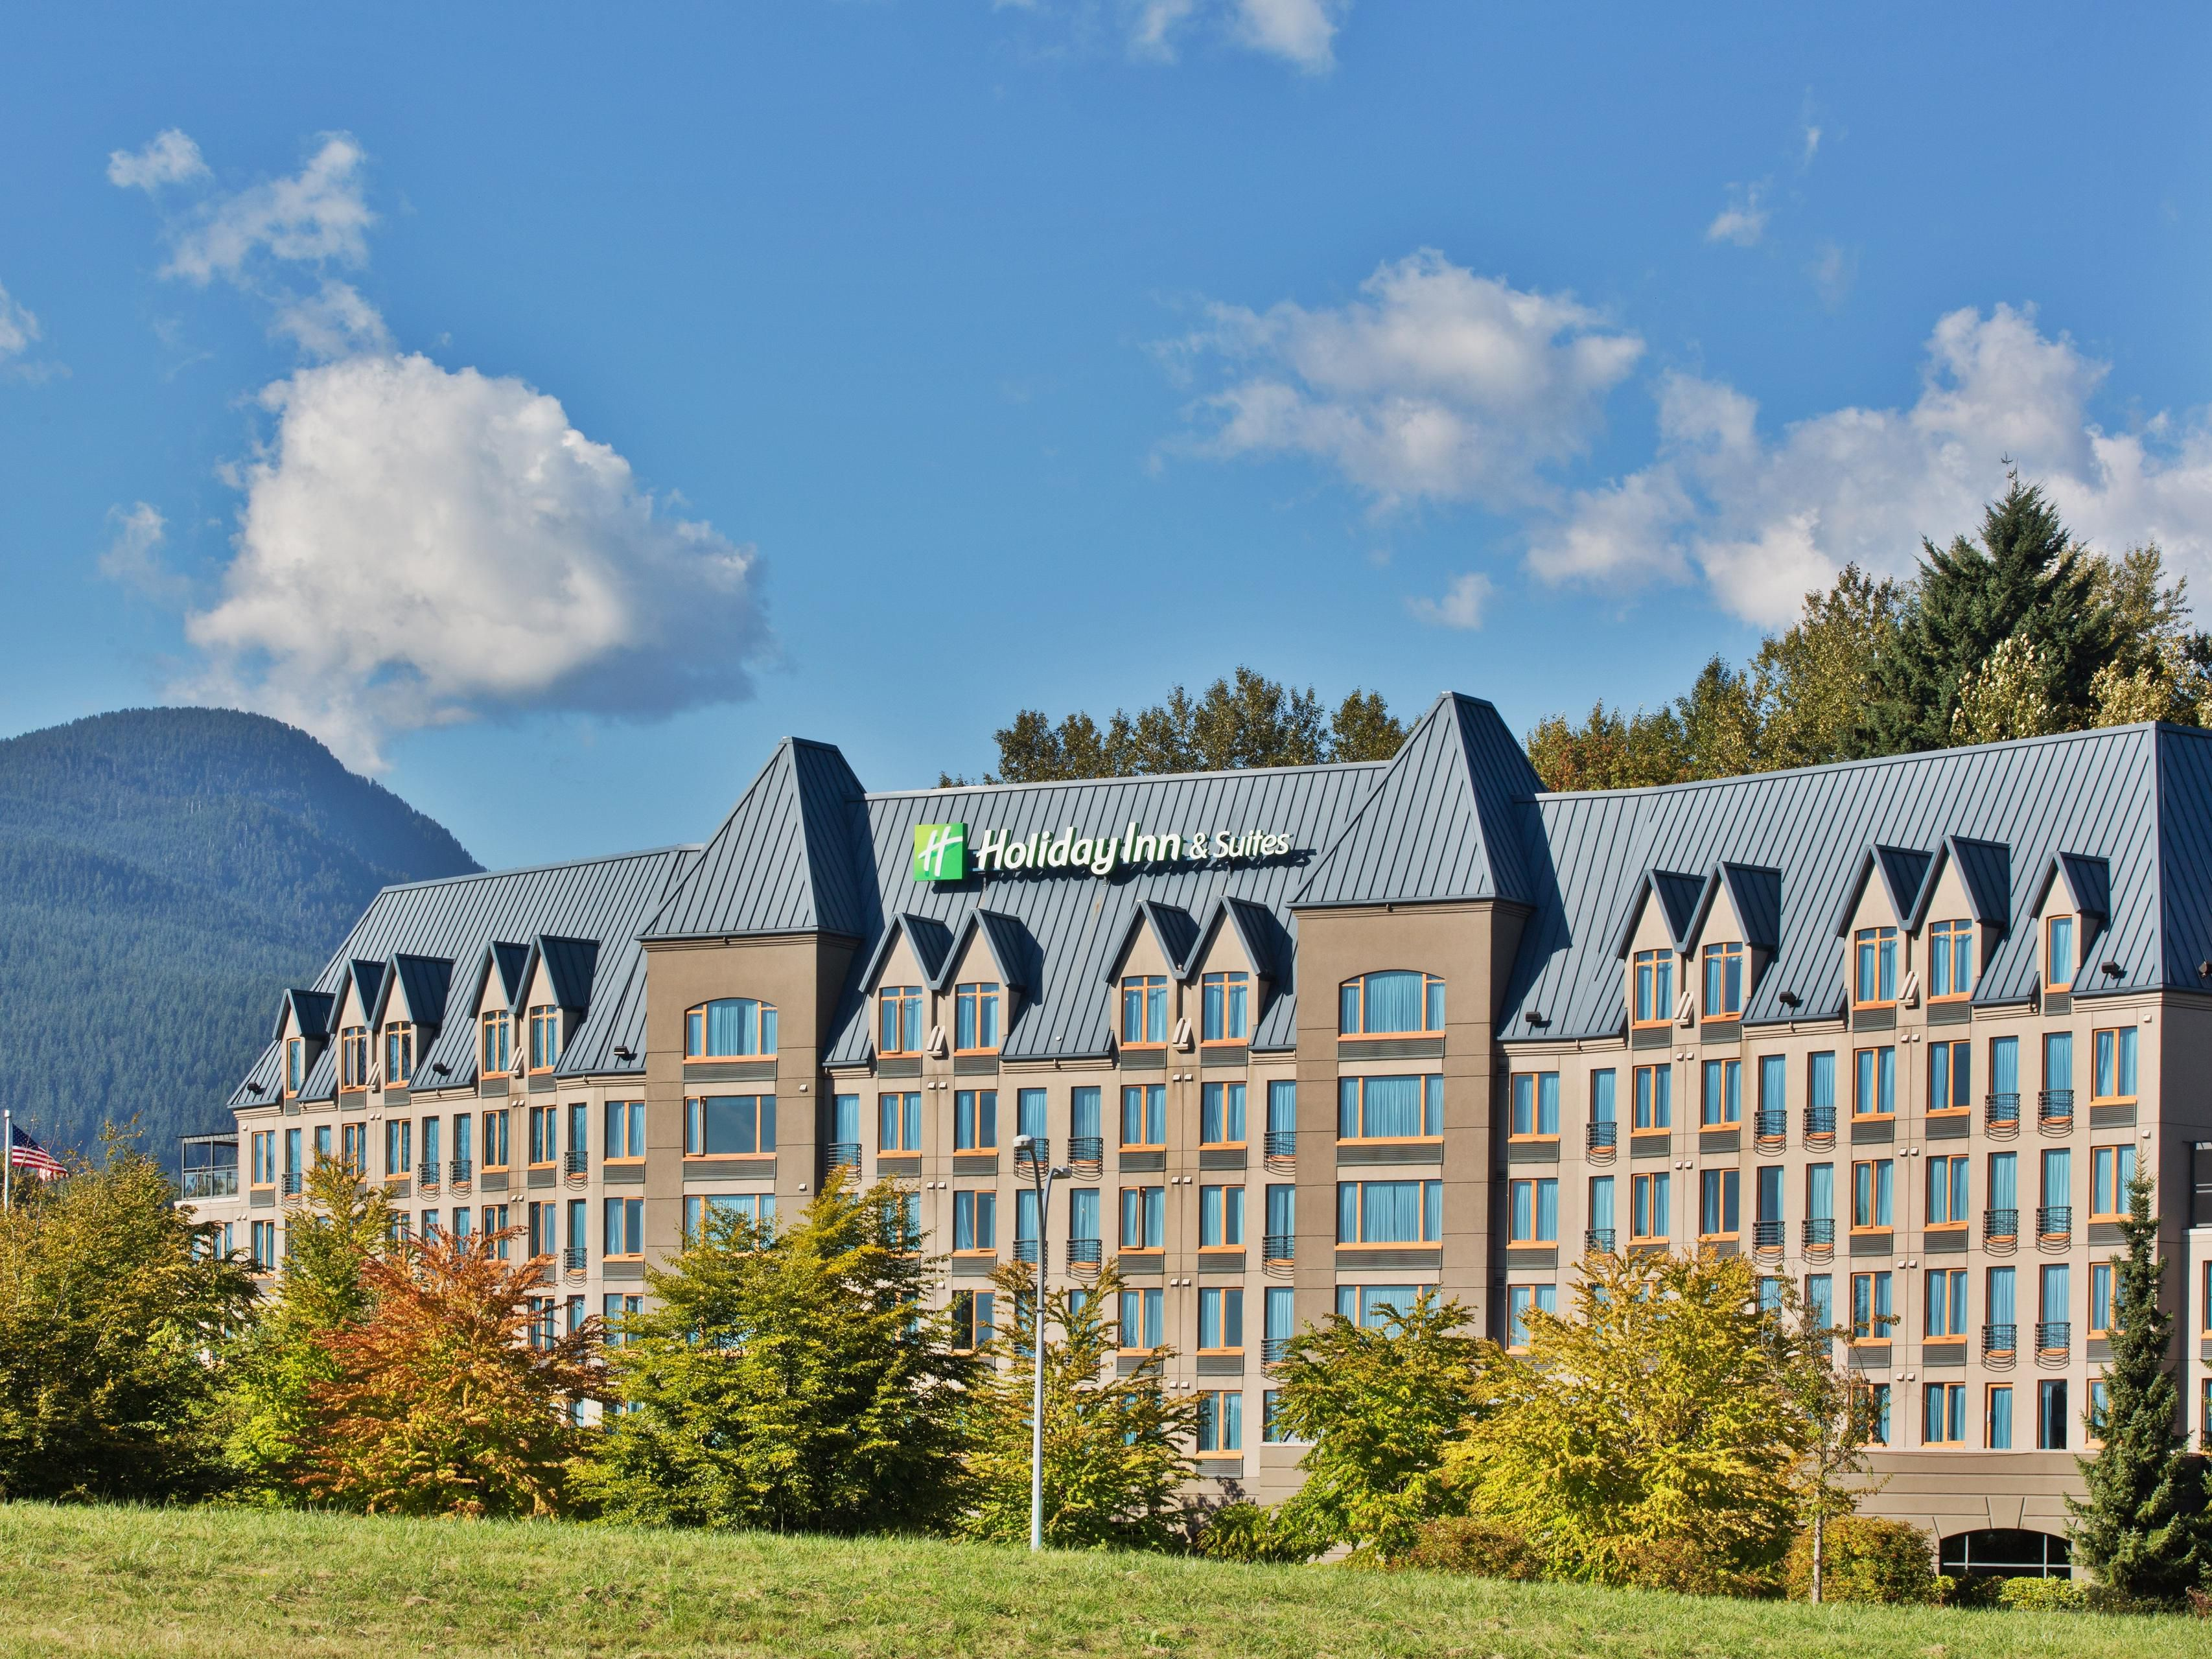 Welcome to the Holiday Inn and Suites North Vancouver